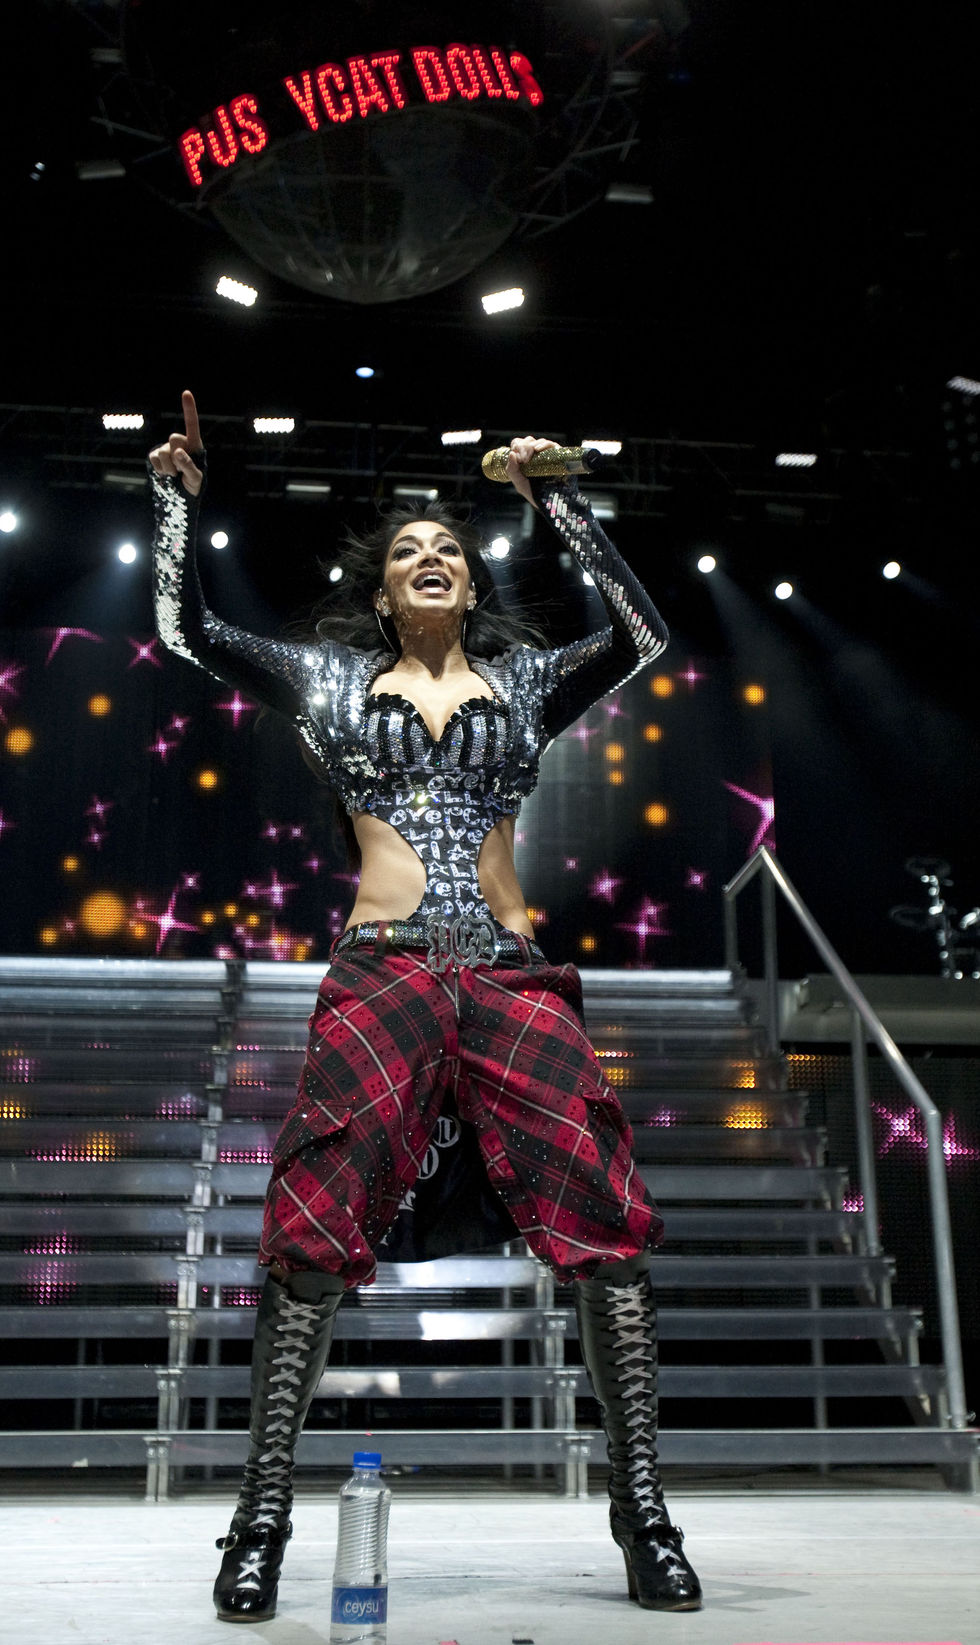 the-pussycat-dolls-performing-at-the-concert-in-germany-10